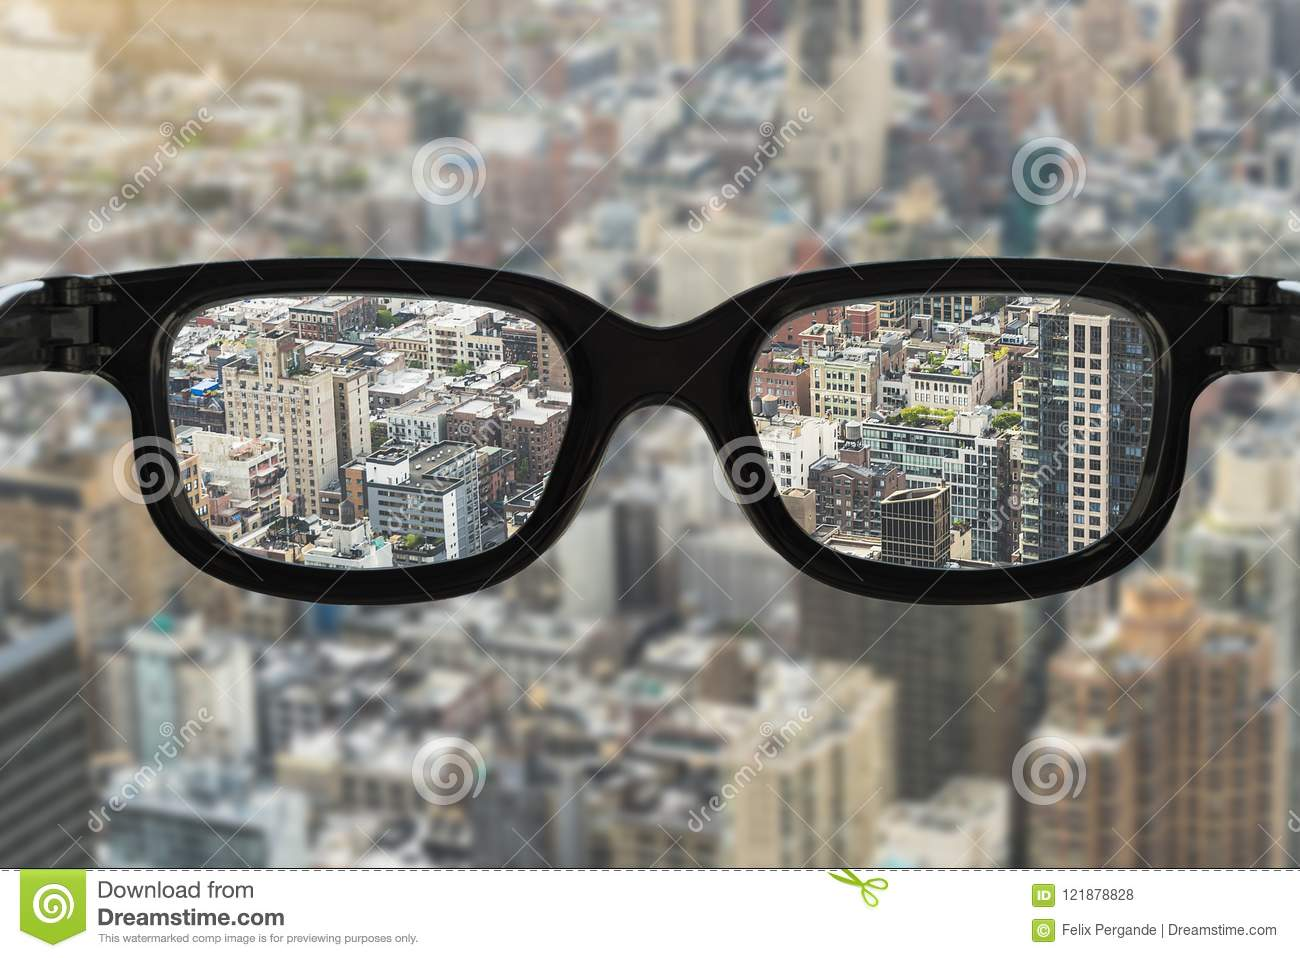 3498de9cfa Glasses focus cityscape stock photo. Image of astigmatism - 121878828